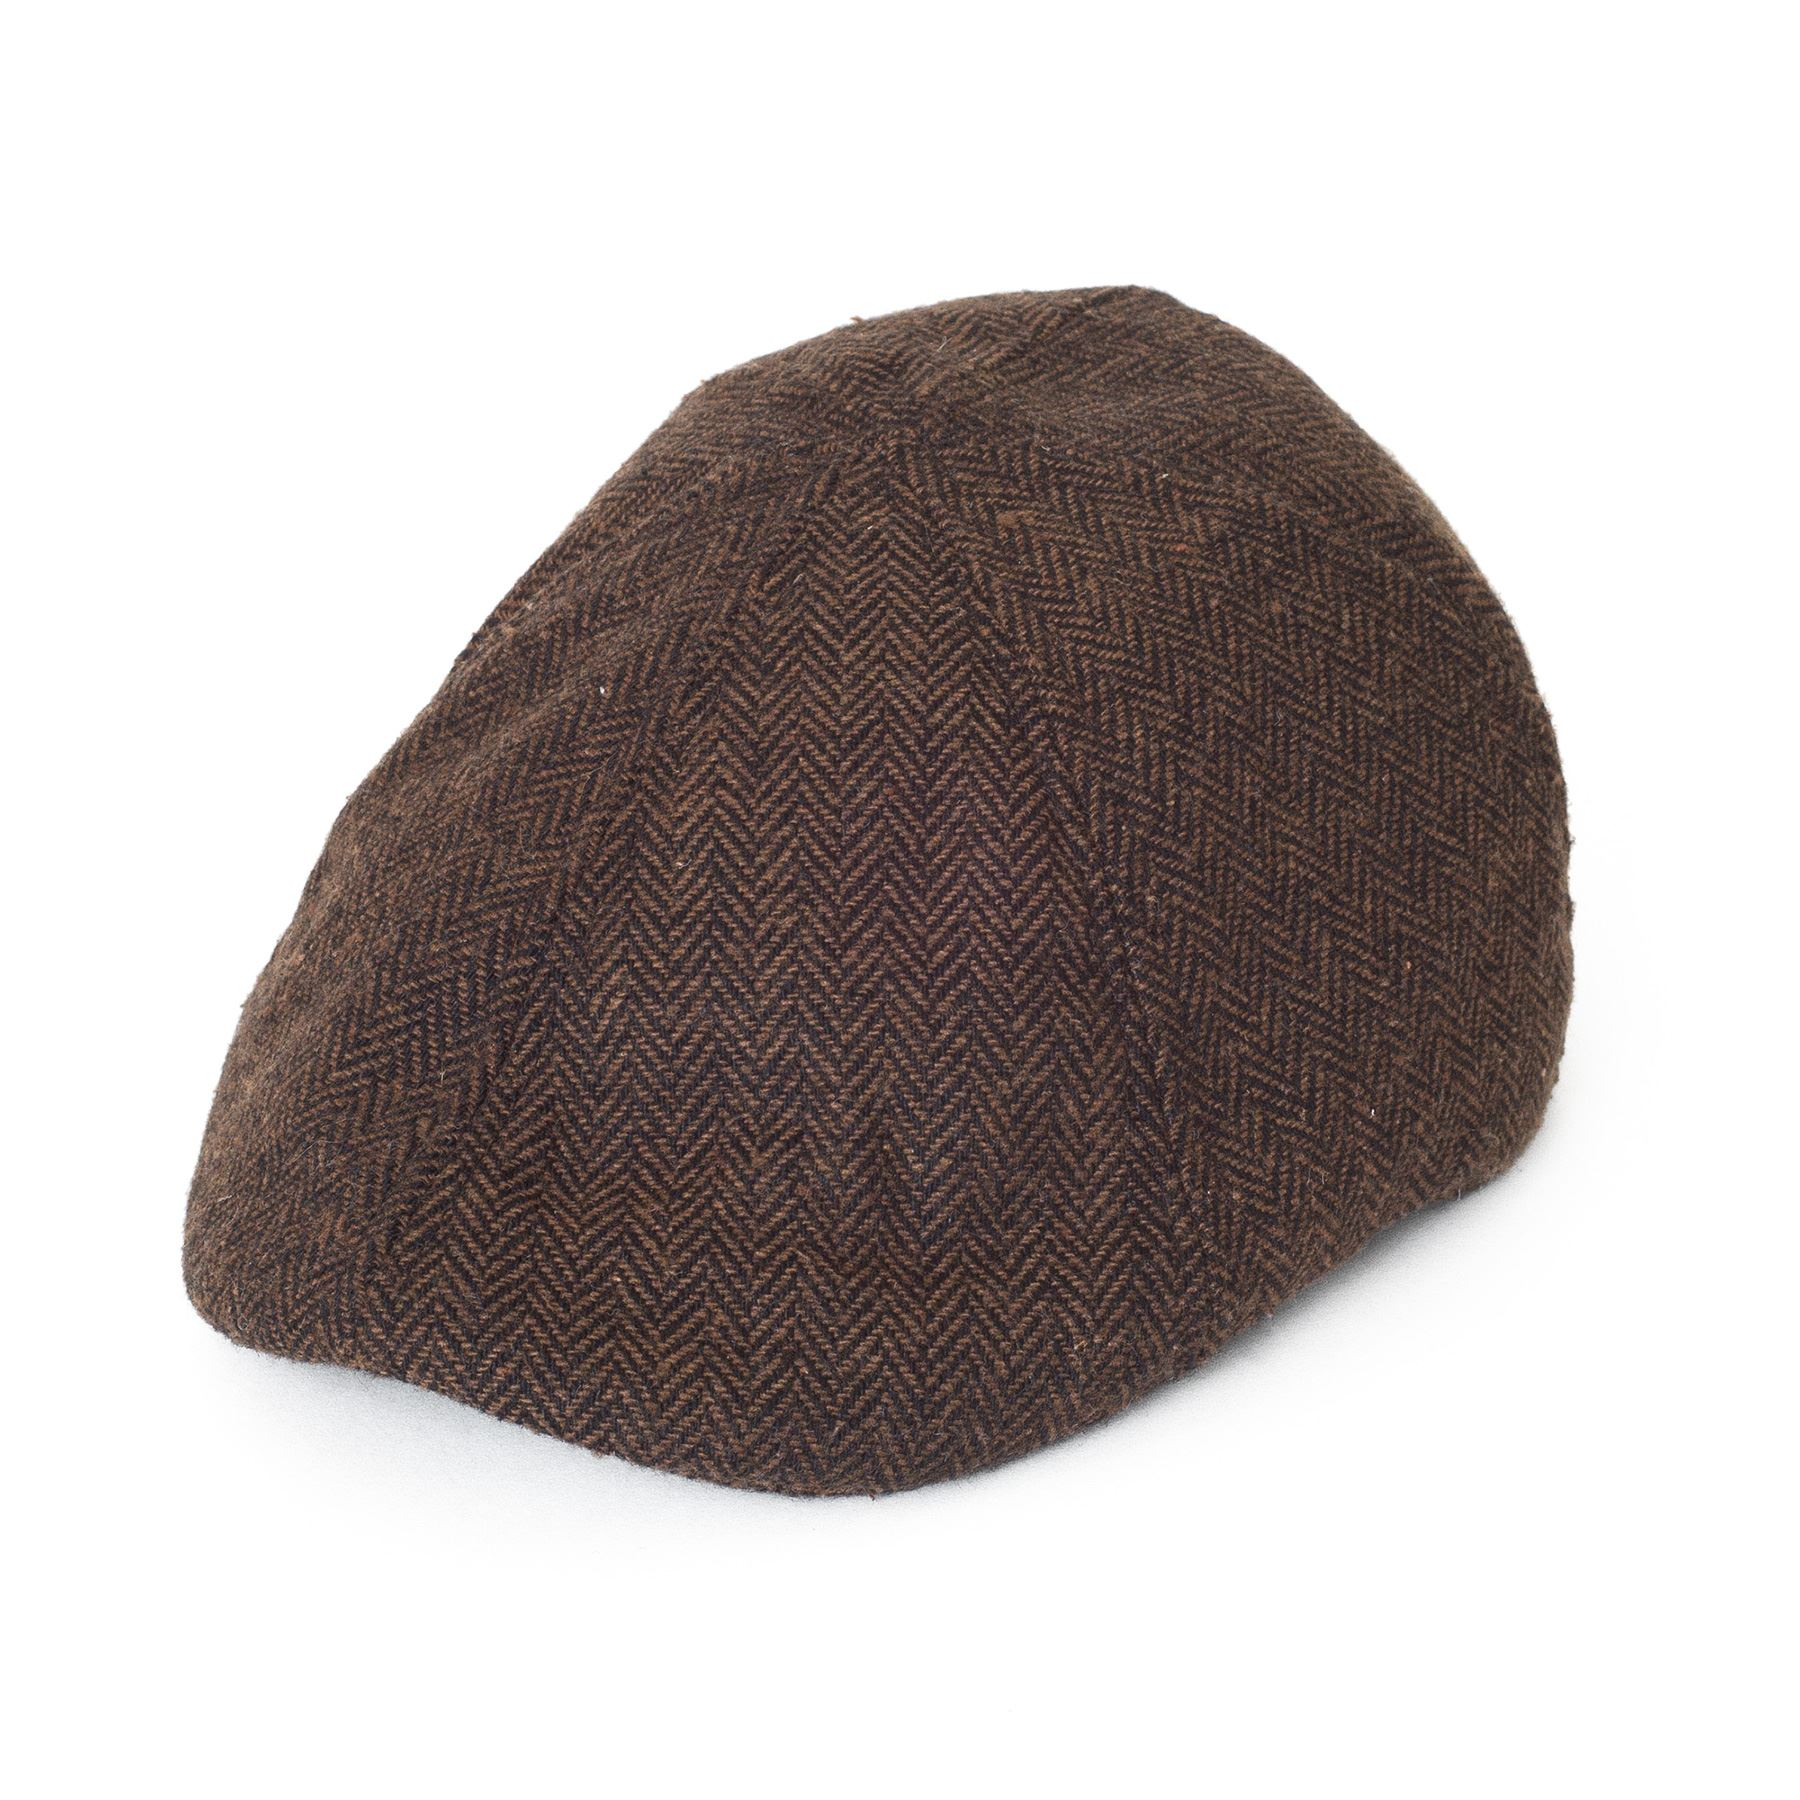 08e1eba207f 6-Panel Wool Blend Duckbill Flat Cap with Herringbone Pattern